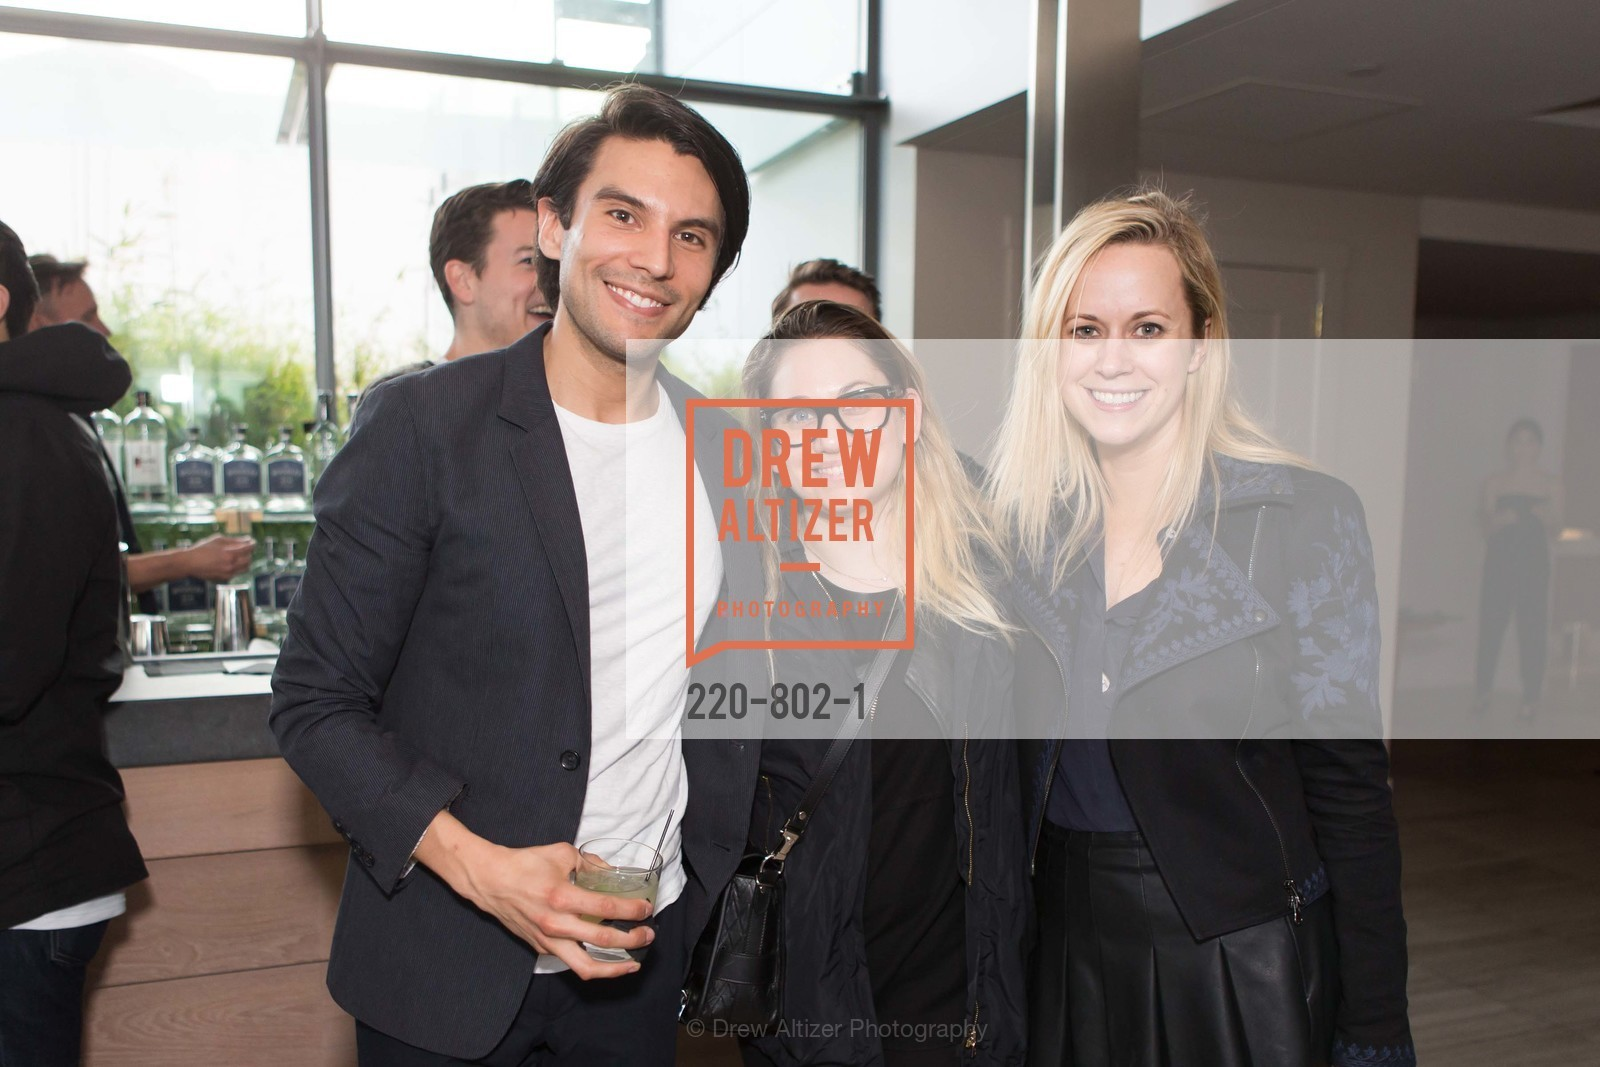 Carlos Rivera-Anaya, Hillary Sloan, Leanne Grit, MR PORTER Celebrate The San Francisco Issue of The Journal, US, April 24th, 2015,Drew Altizer, Drew Altizer Photography, full-service agency, private events, San Francisco photographer, photographer california